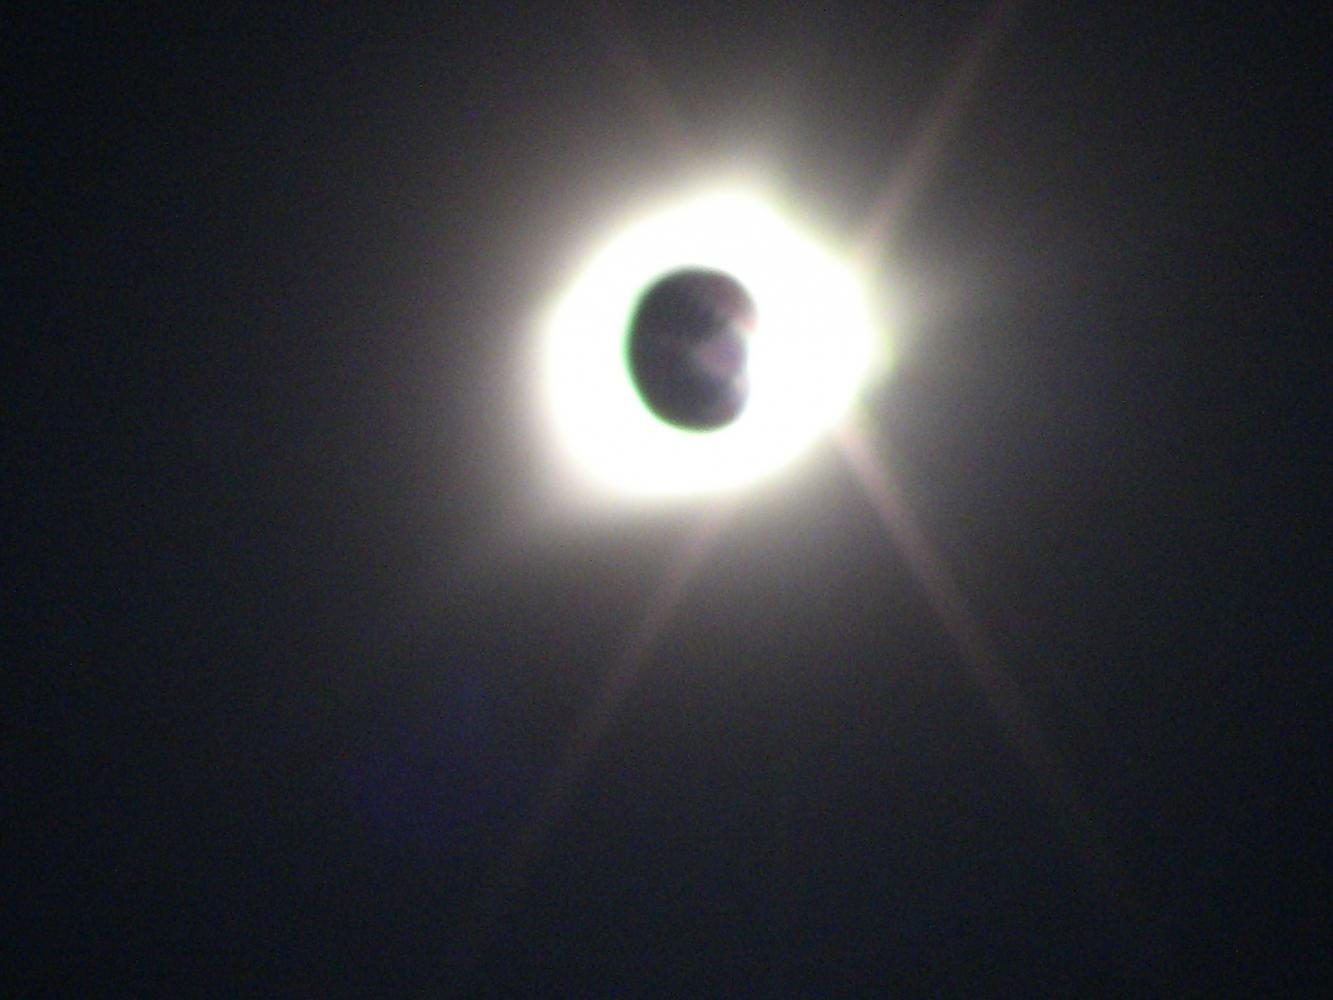 Junior+Isaiah+Schindler+snaps+pictures+of+the+eclipse+where+he+was+one+of+the+40+students+chosen+to+watch+the+complete+totality+in+Nebraska.+